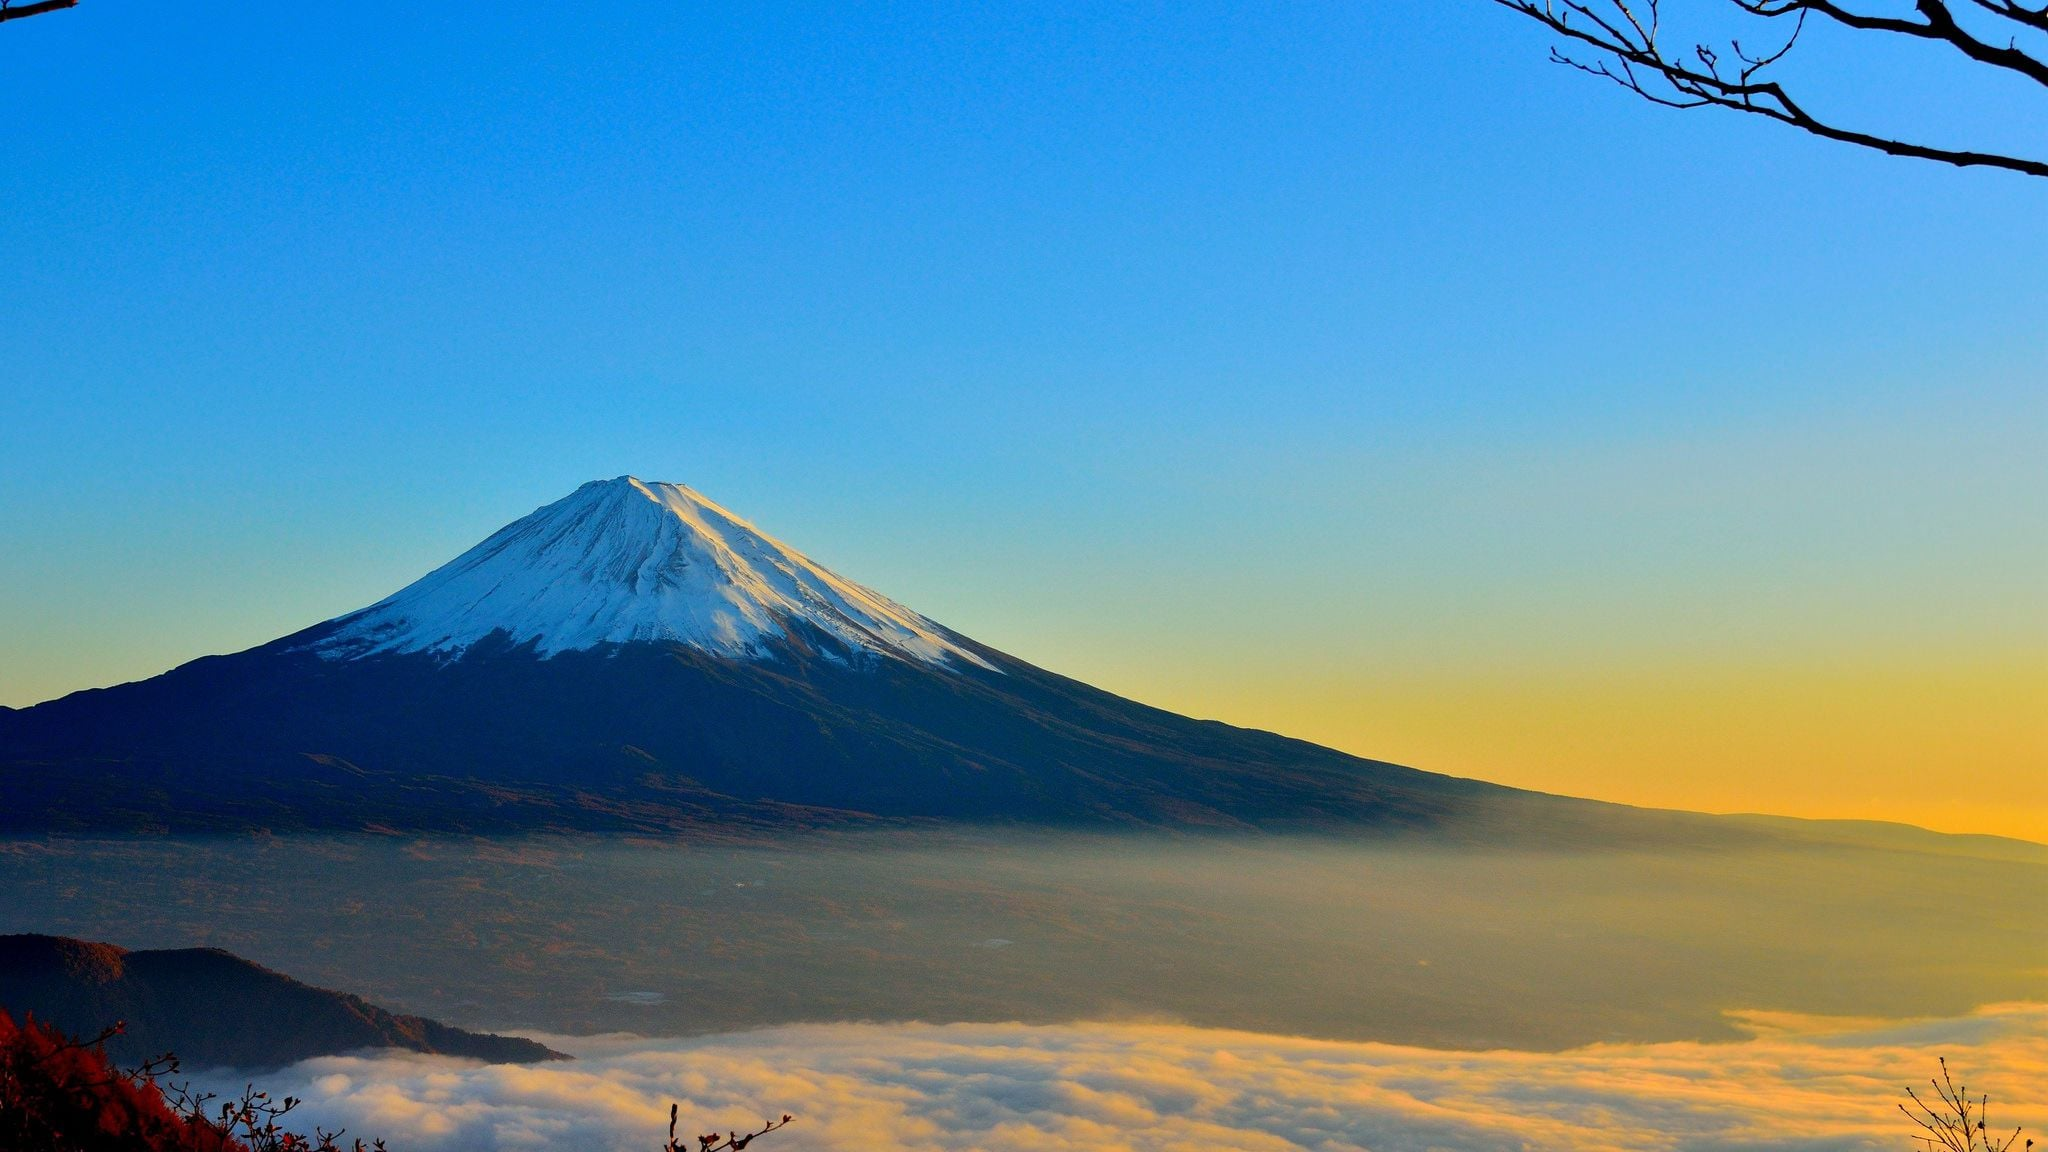 36 Mount Fuji wallpapers HD 2048x1152